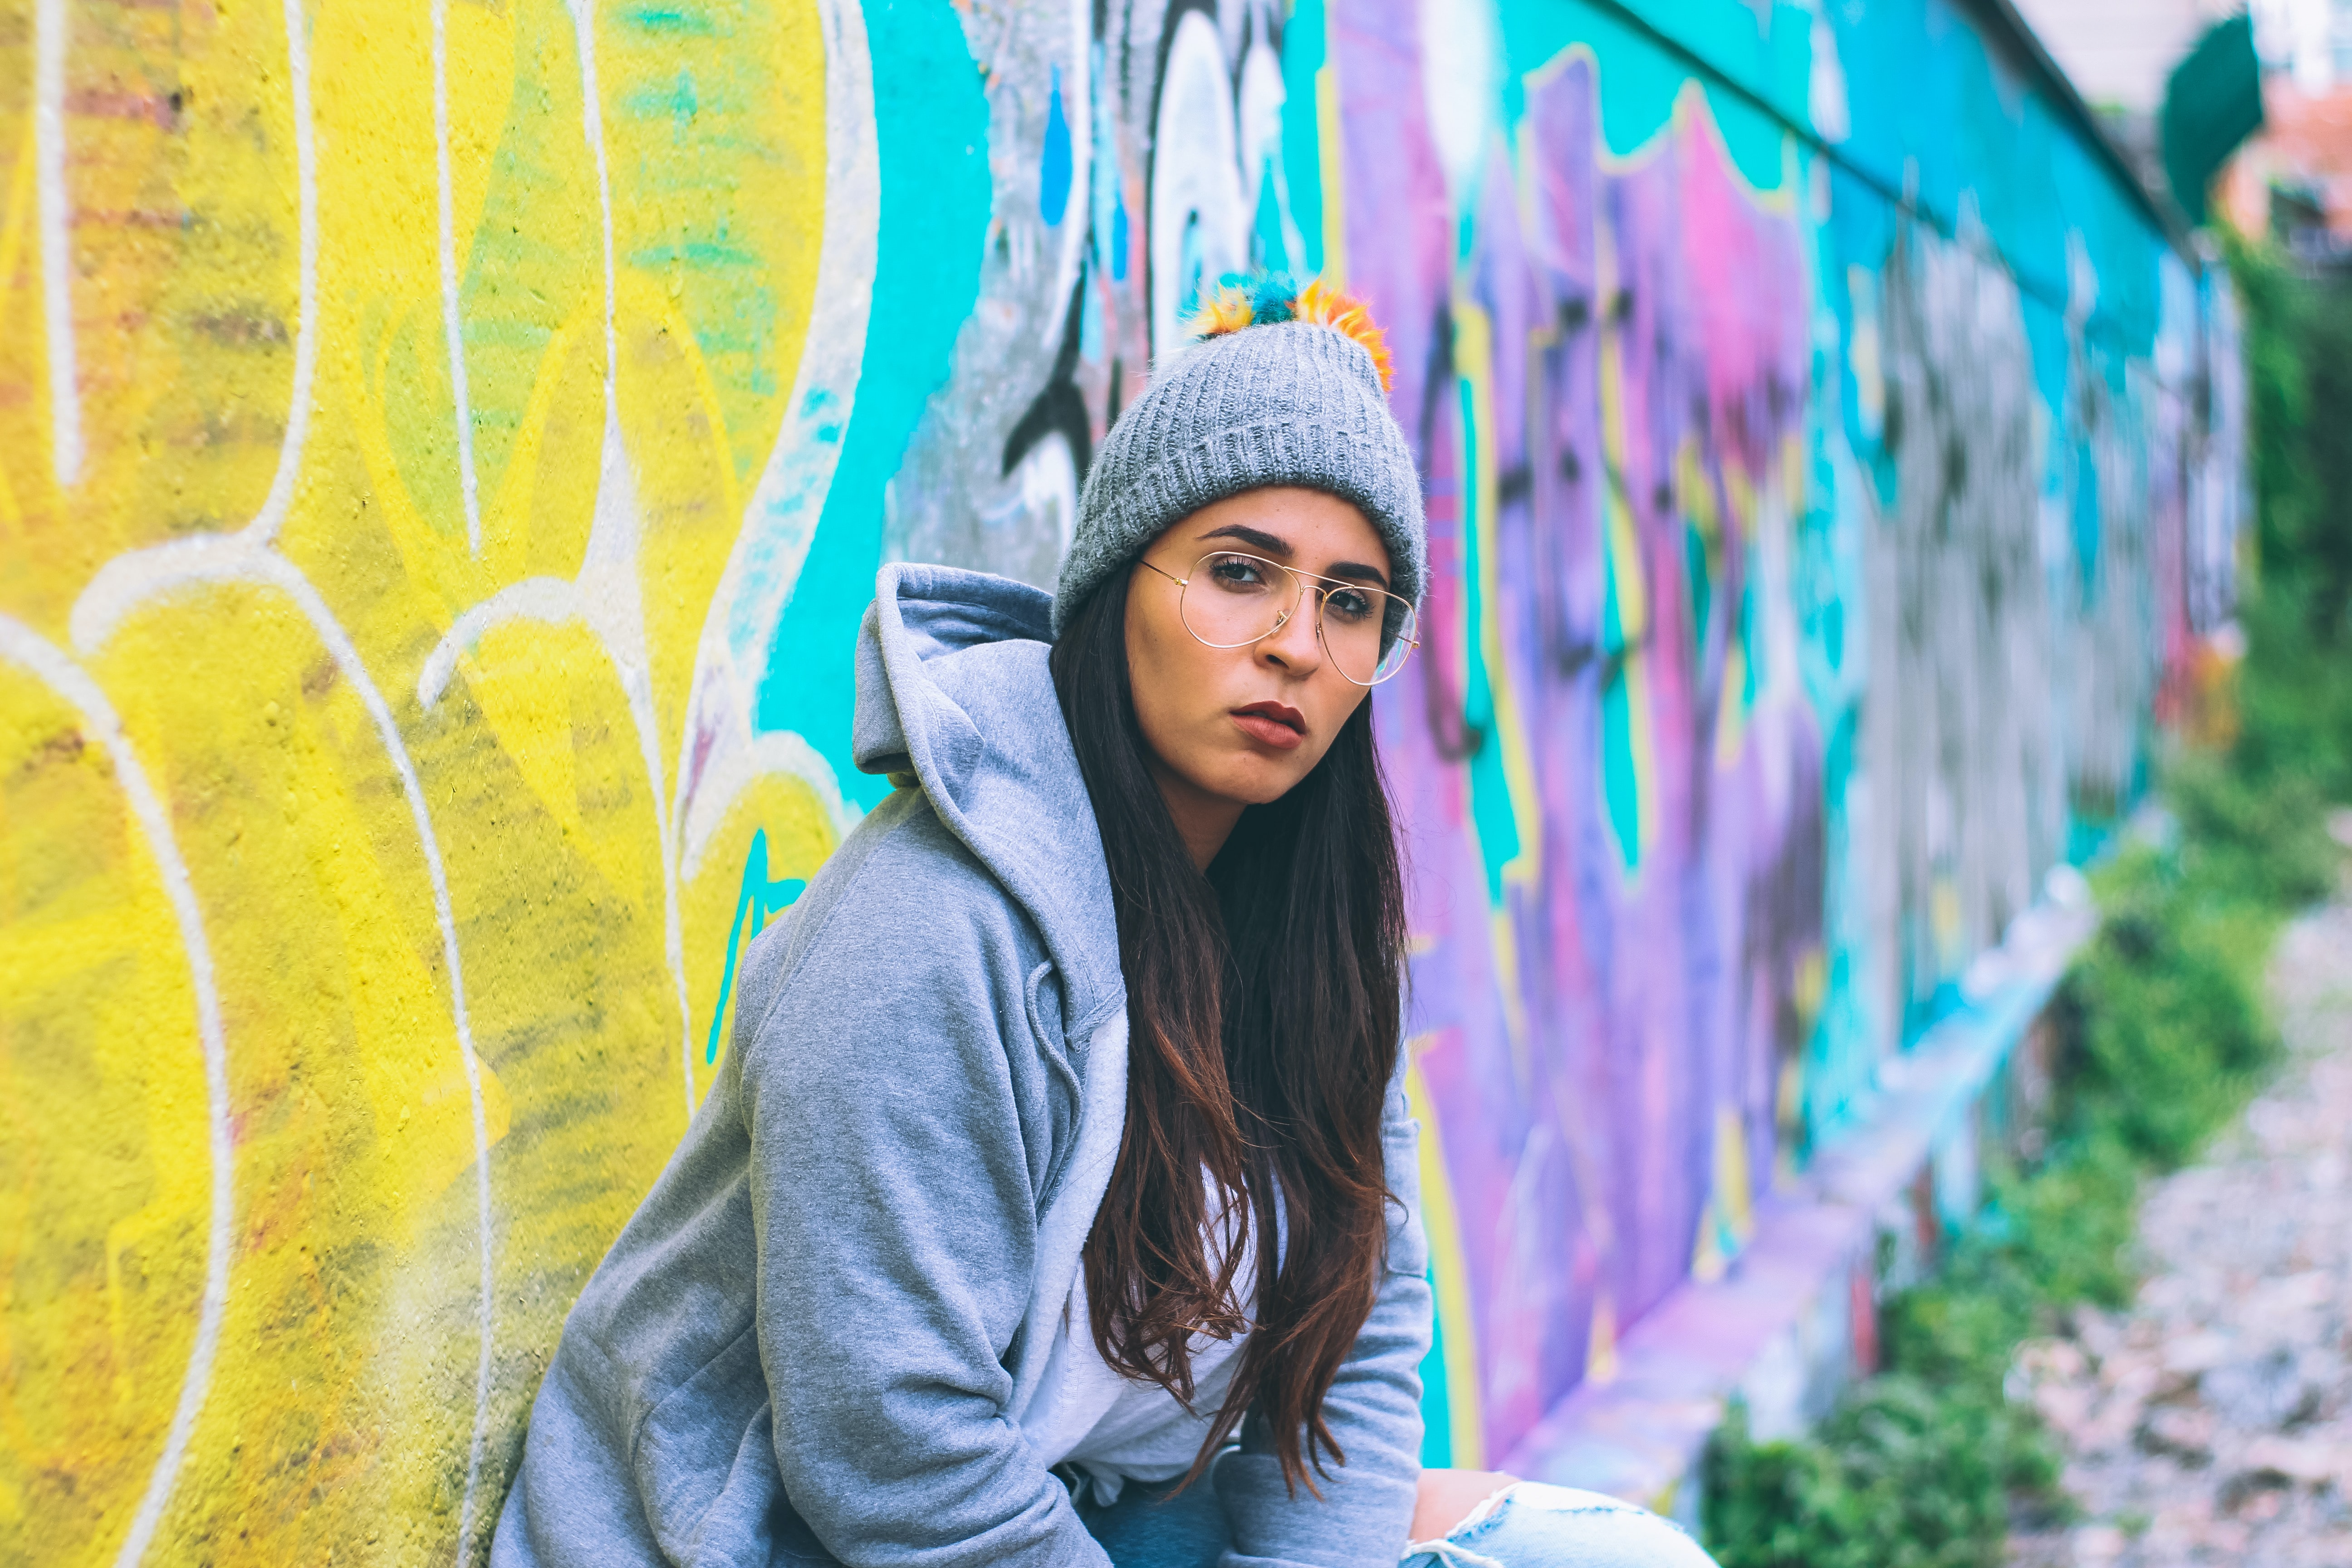 Fashionable urban female with glasses and beanie hat sitting in front of colorful graffiti, Paris